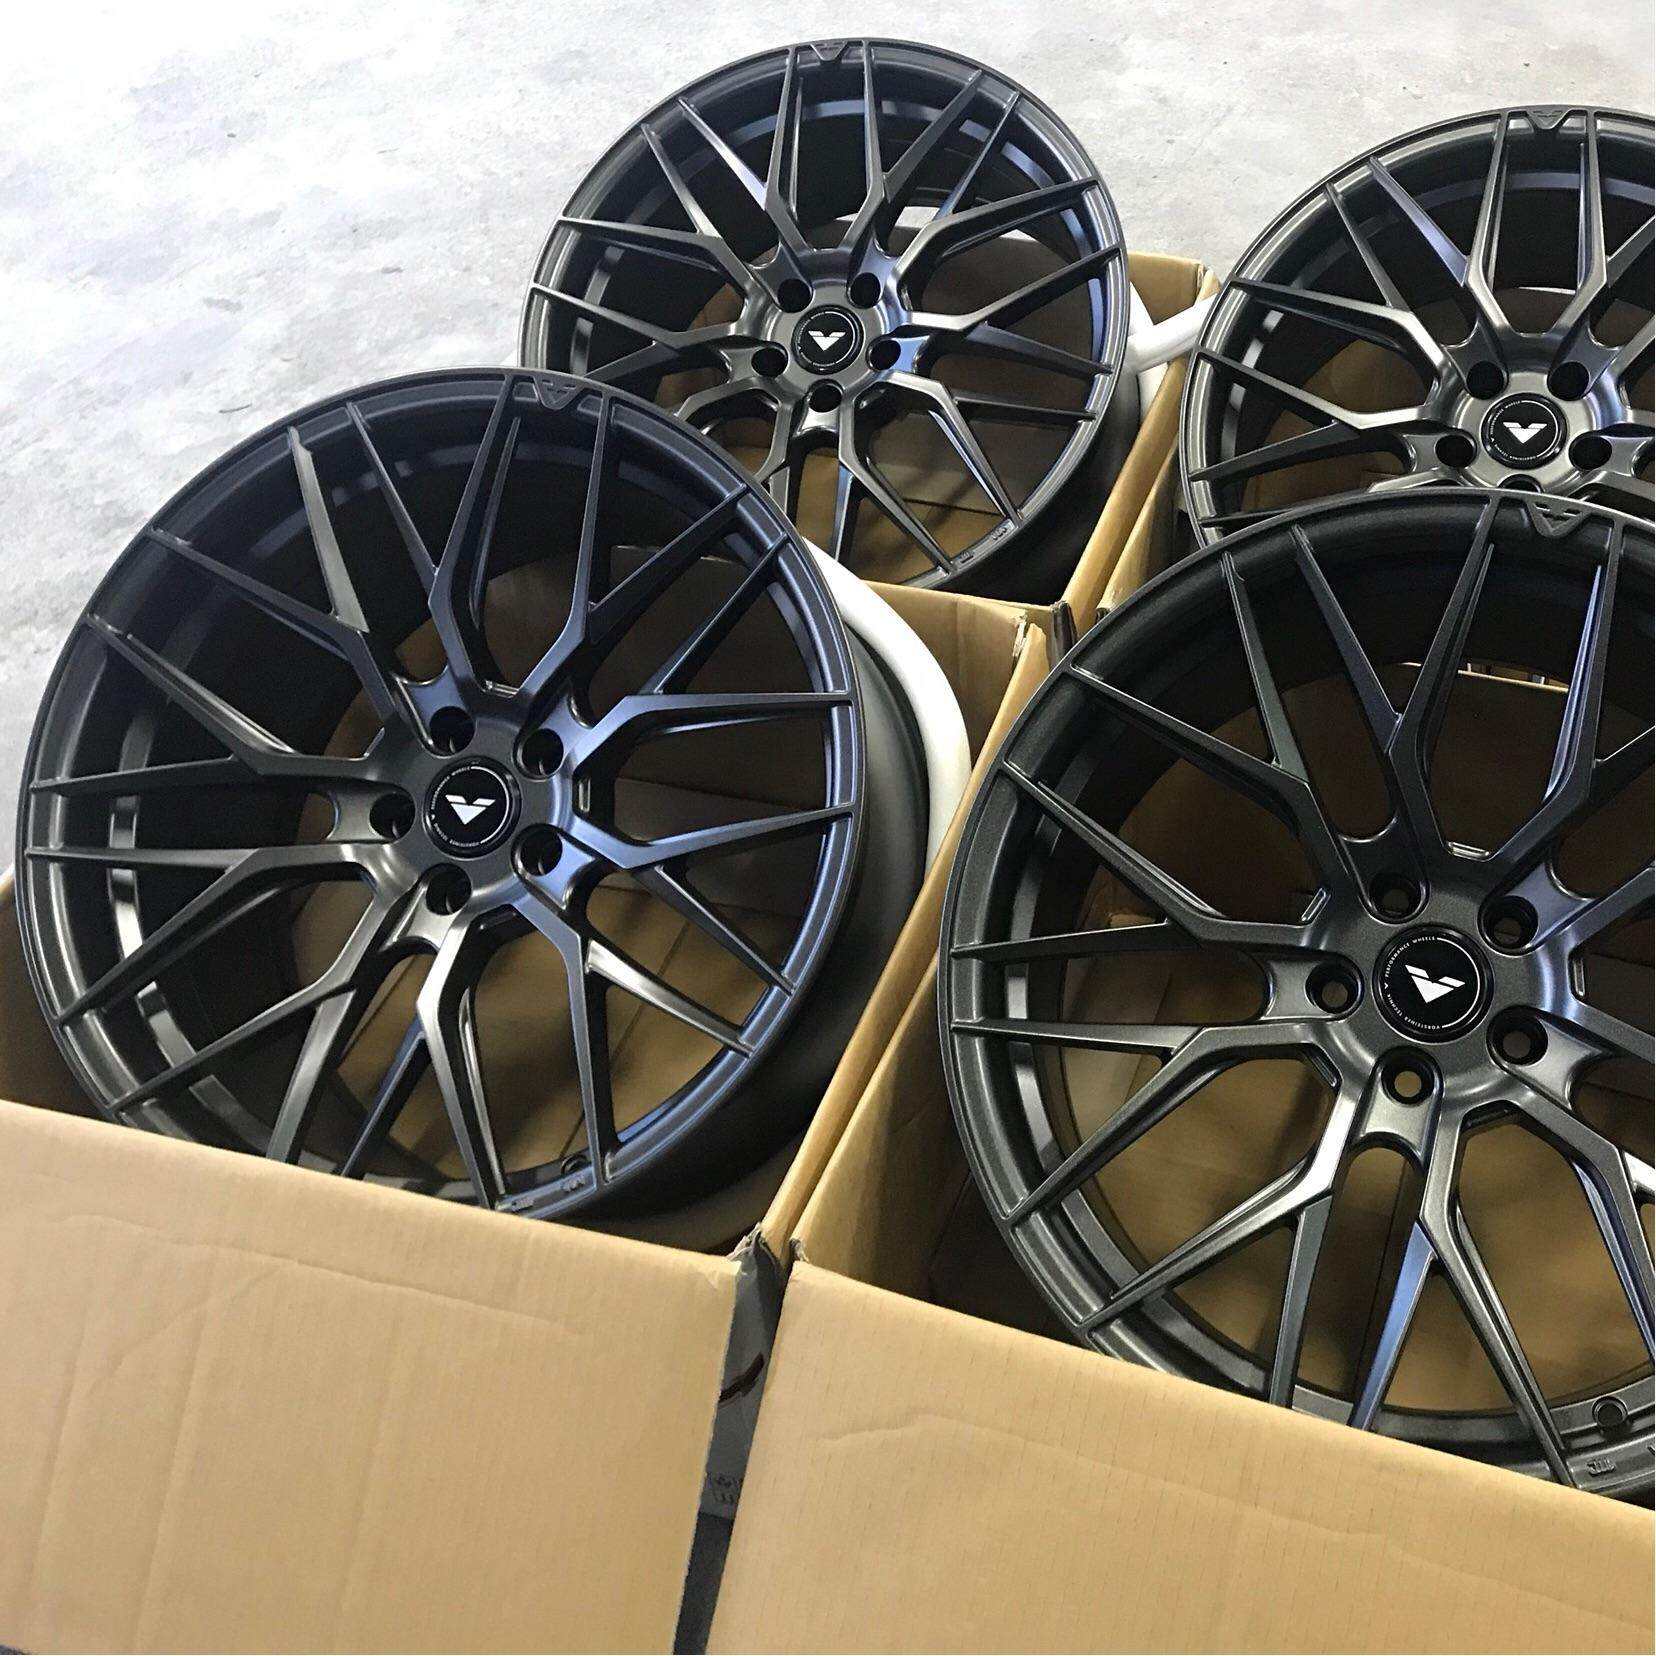 wheels tires Buy wheels tires at Best Price in Malaysia